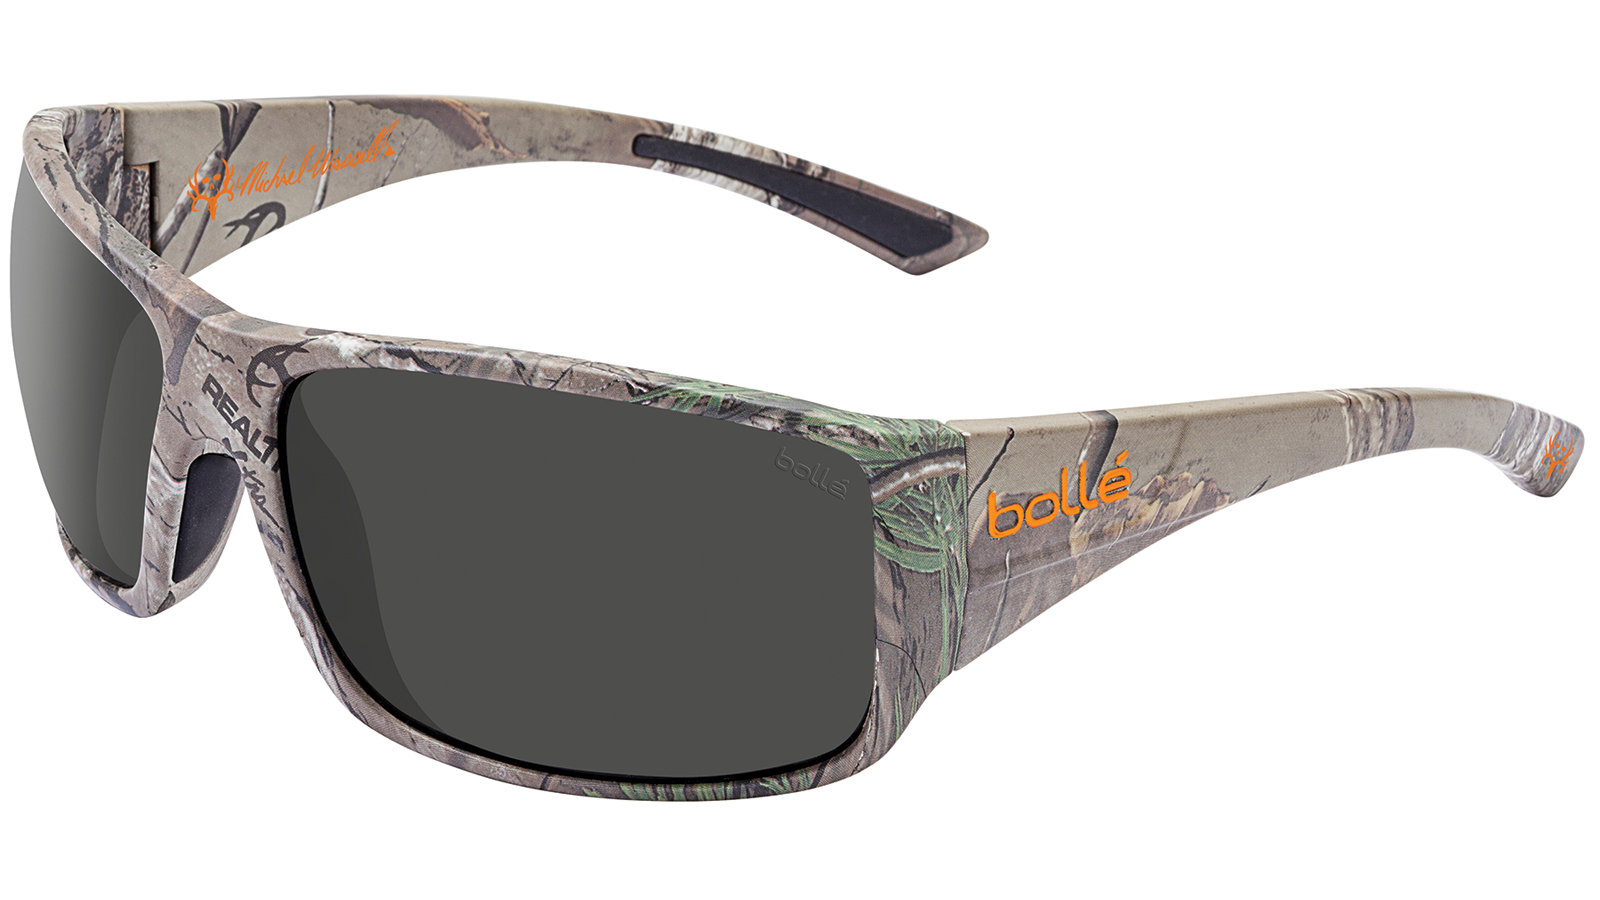 Bolle 12035 Tigersnake Shooting|Sporting Glasses Realtree Xtra